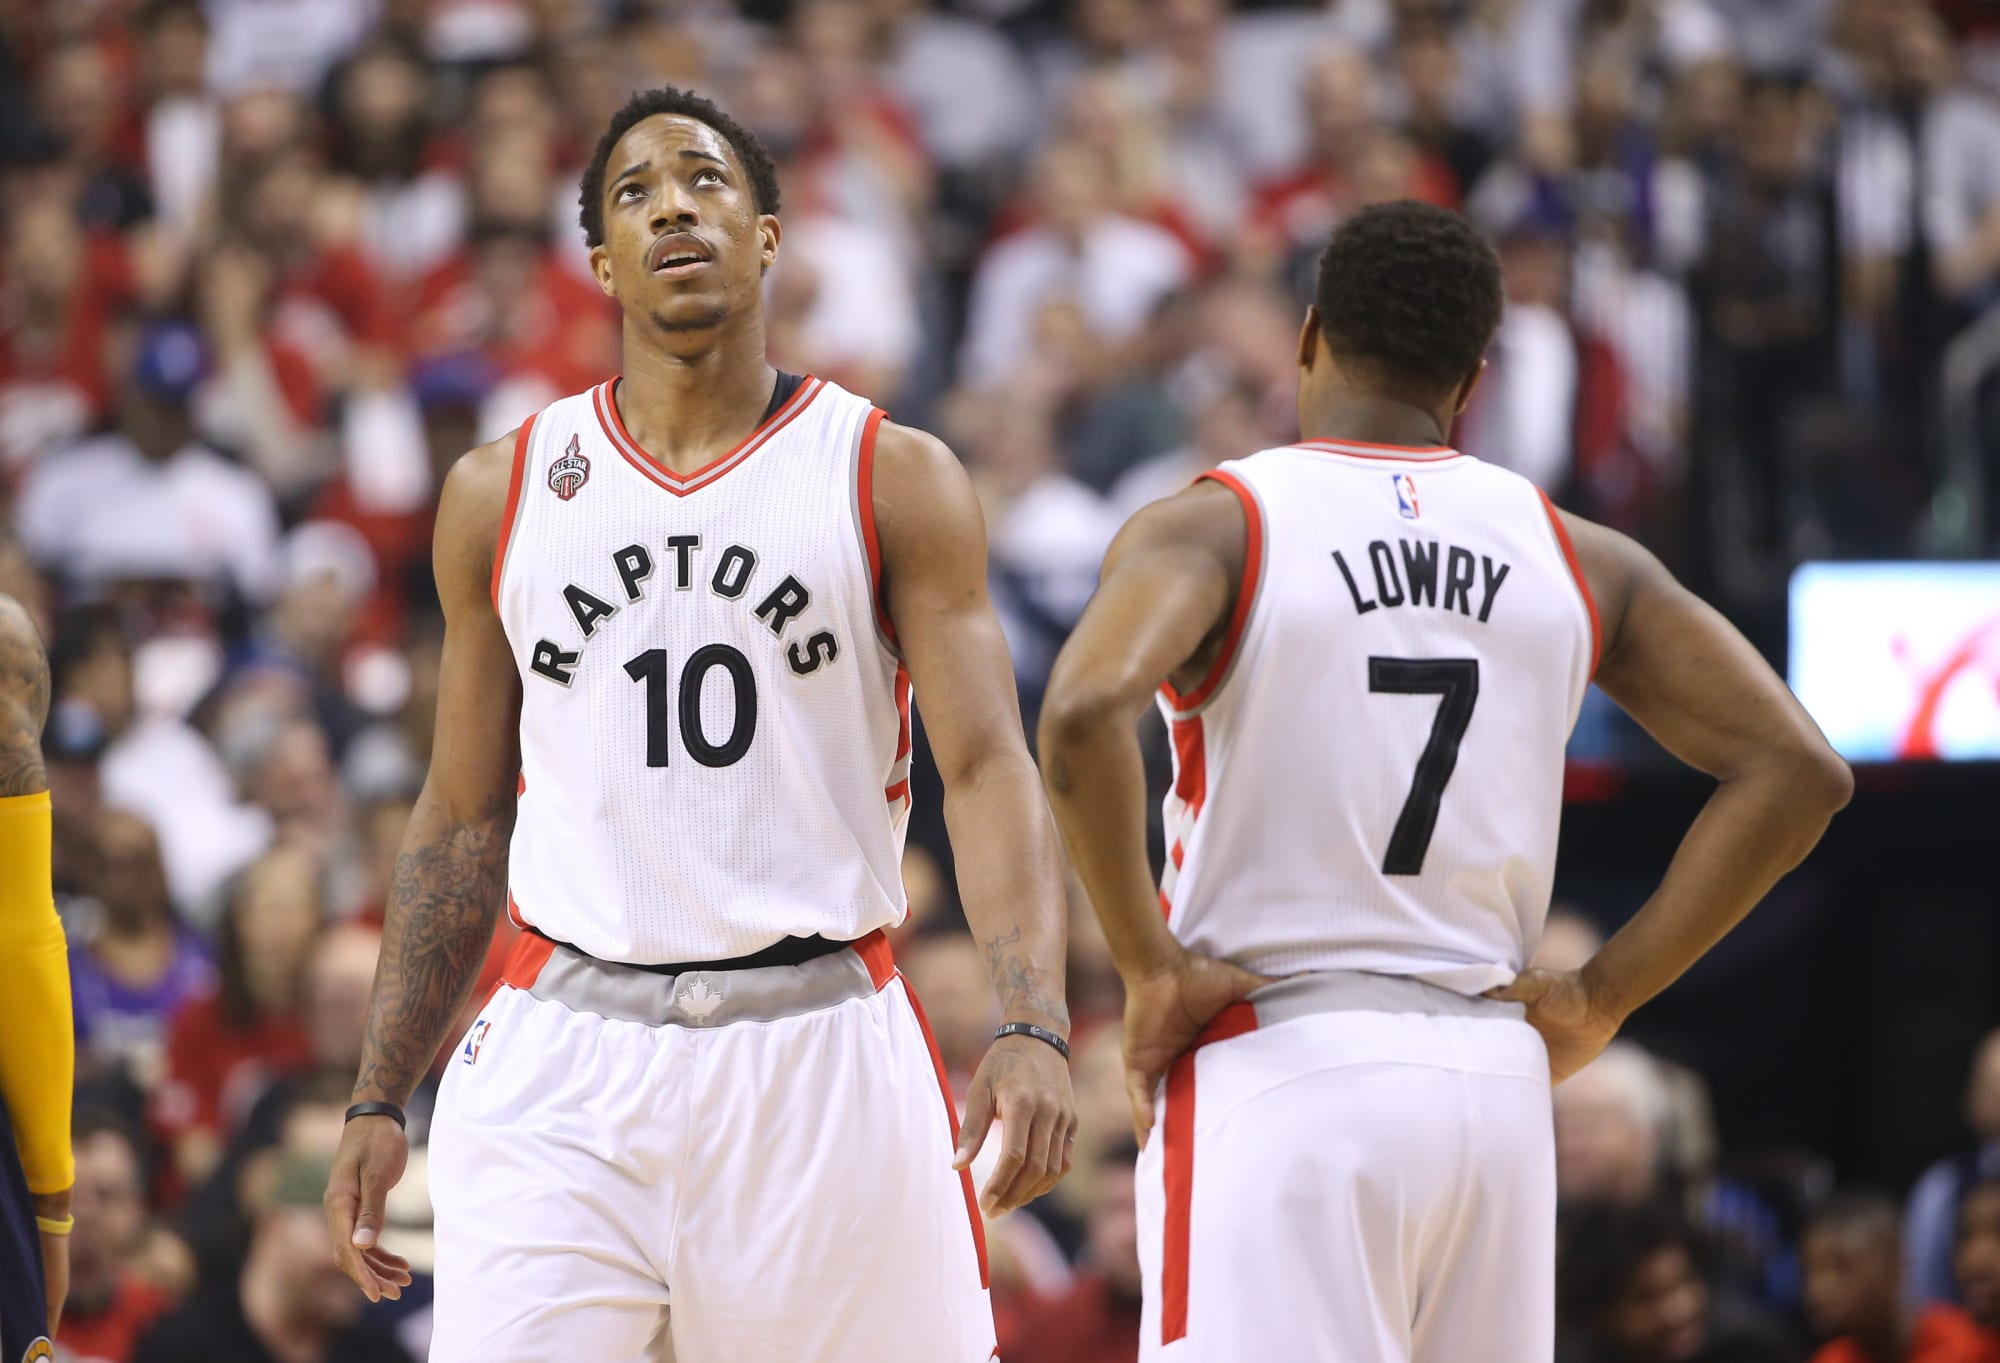 Toronto Raptors: What if DeMar DeRozan came back to Toronto?